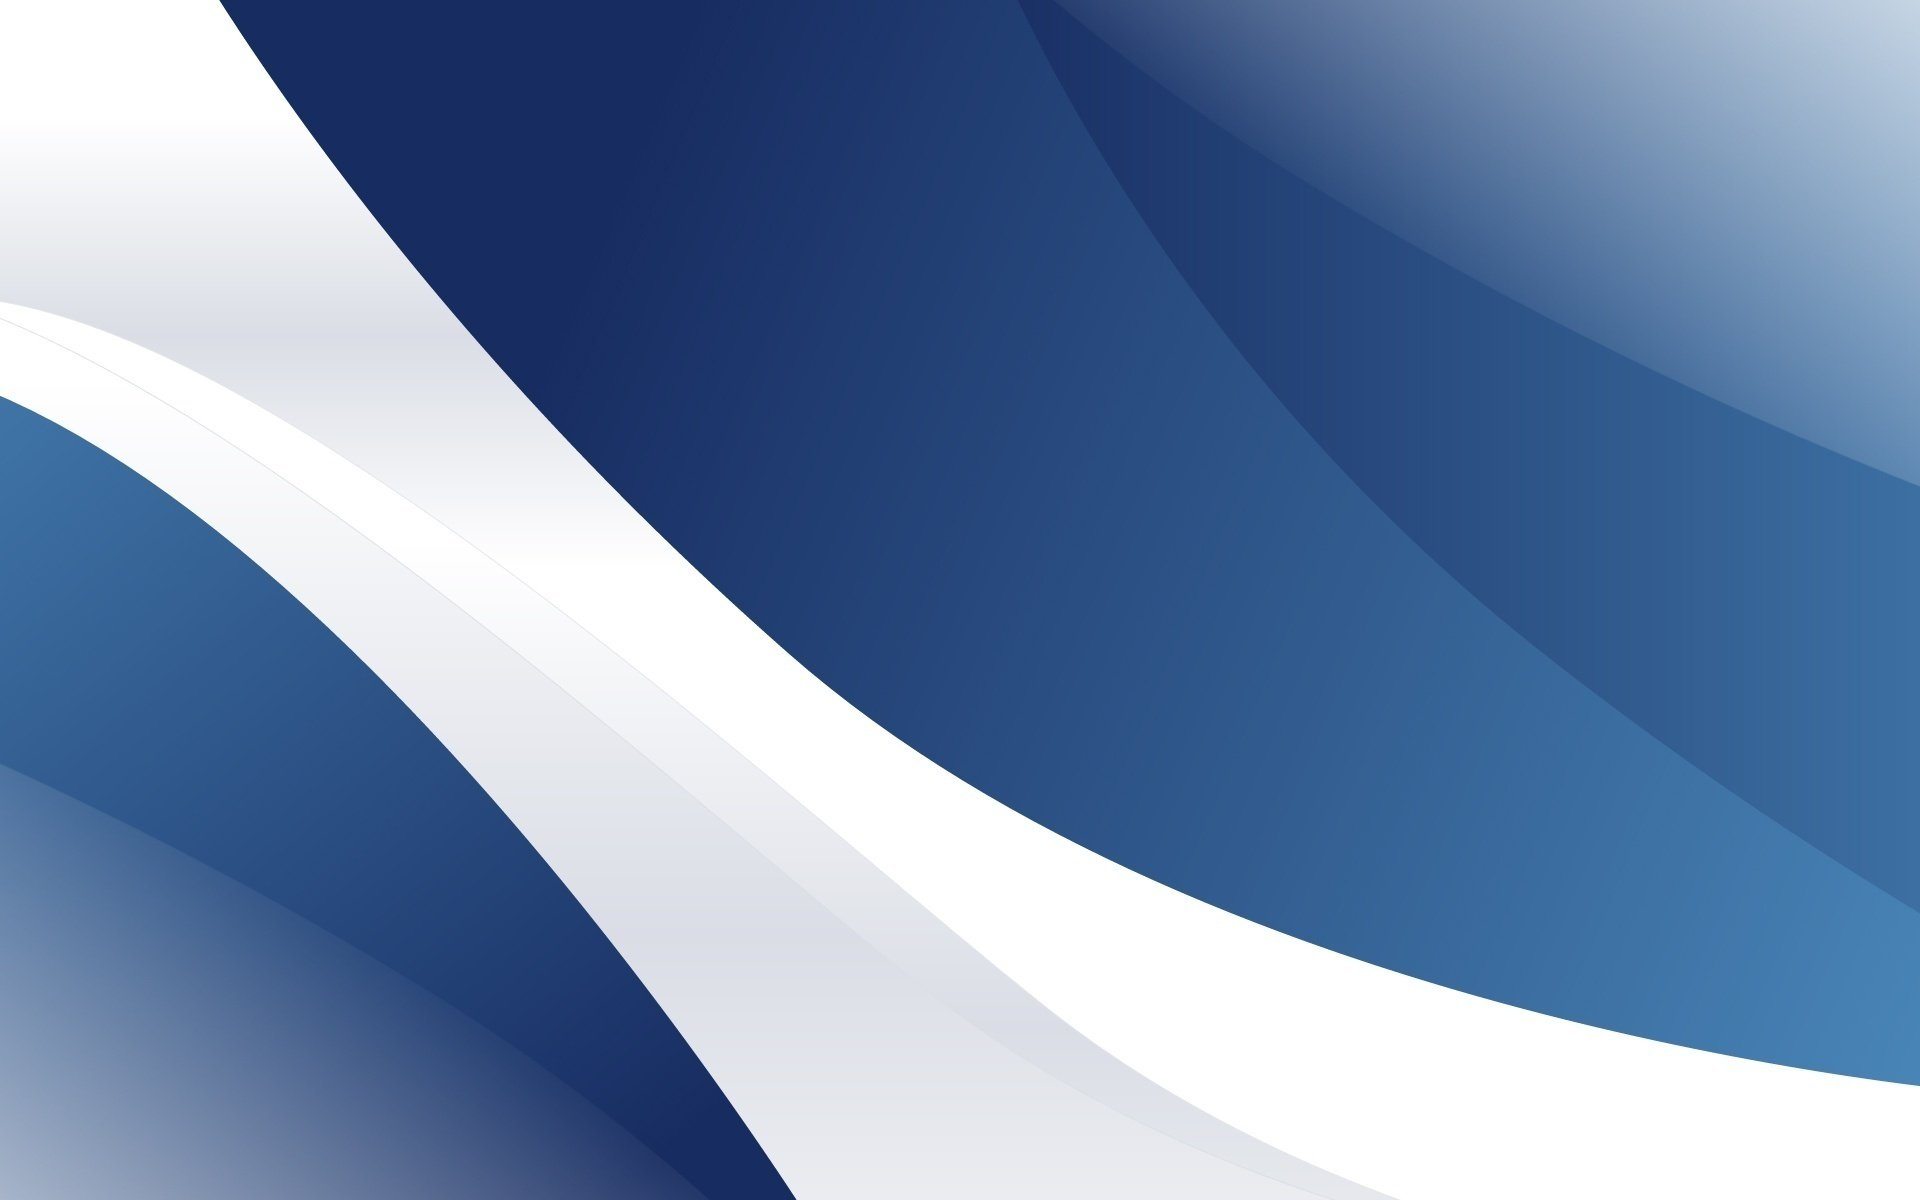 Blue White Wallpapers and Background Images   stmednet 1920x1200